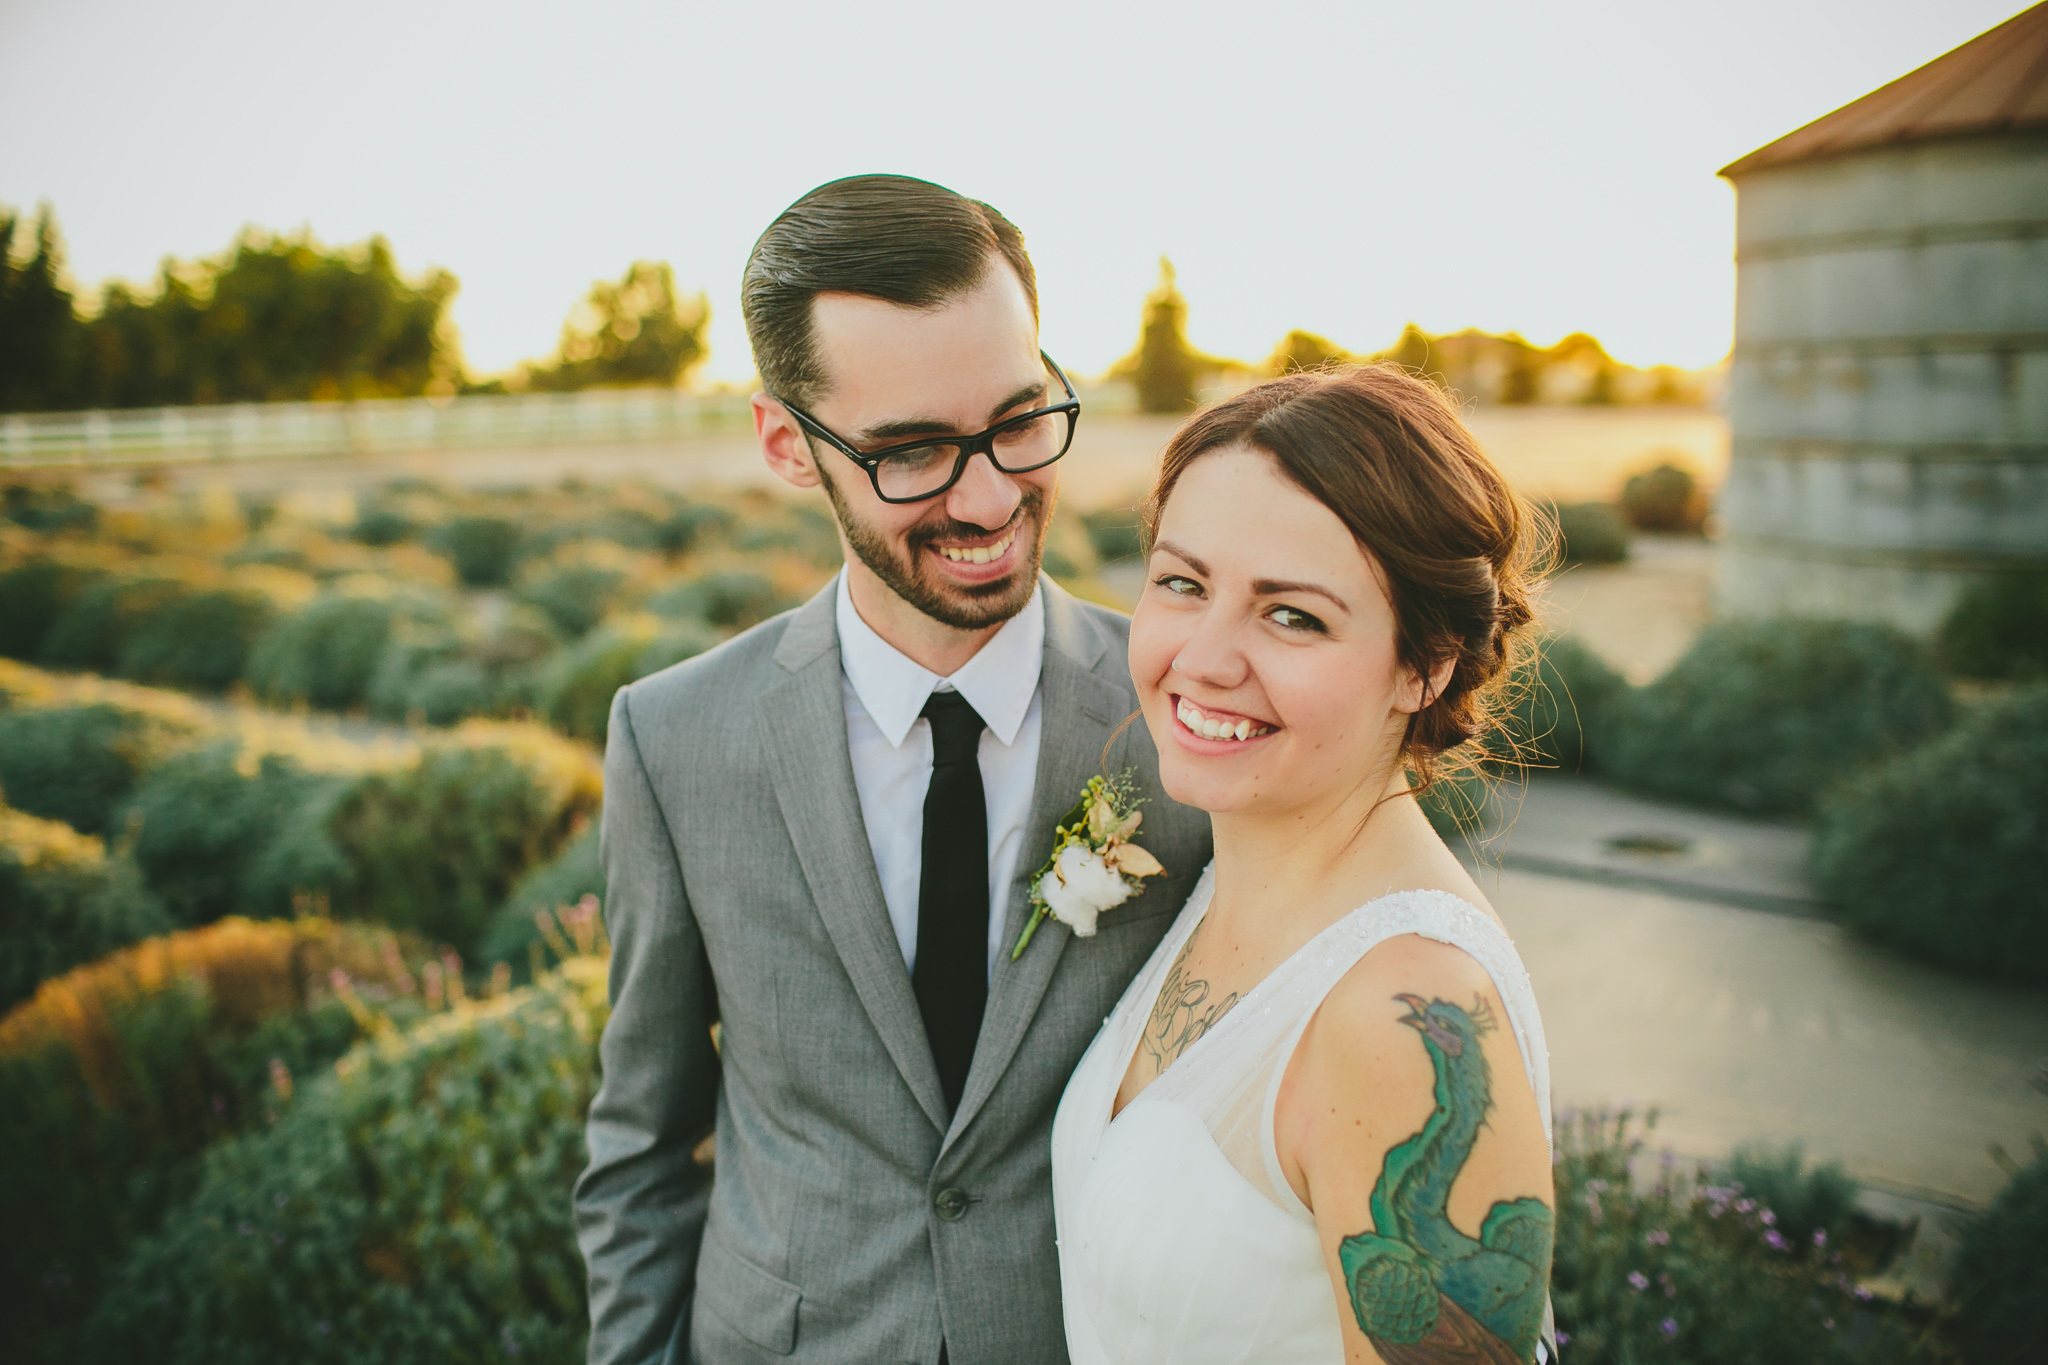 Amy+Nick-WEDDING_KellyBoitanoPhotography20151219_0134